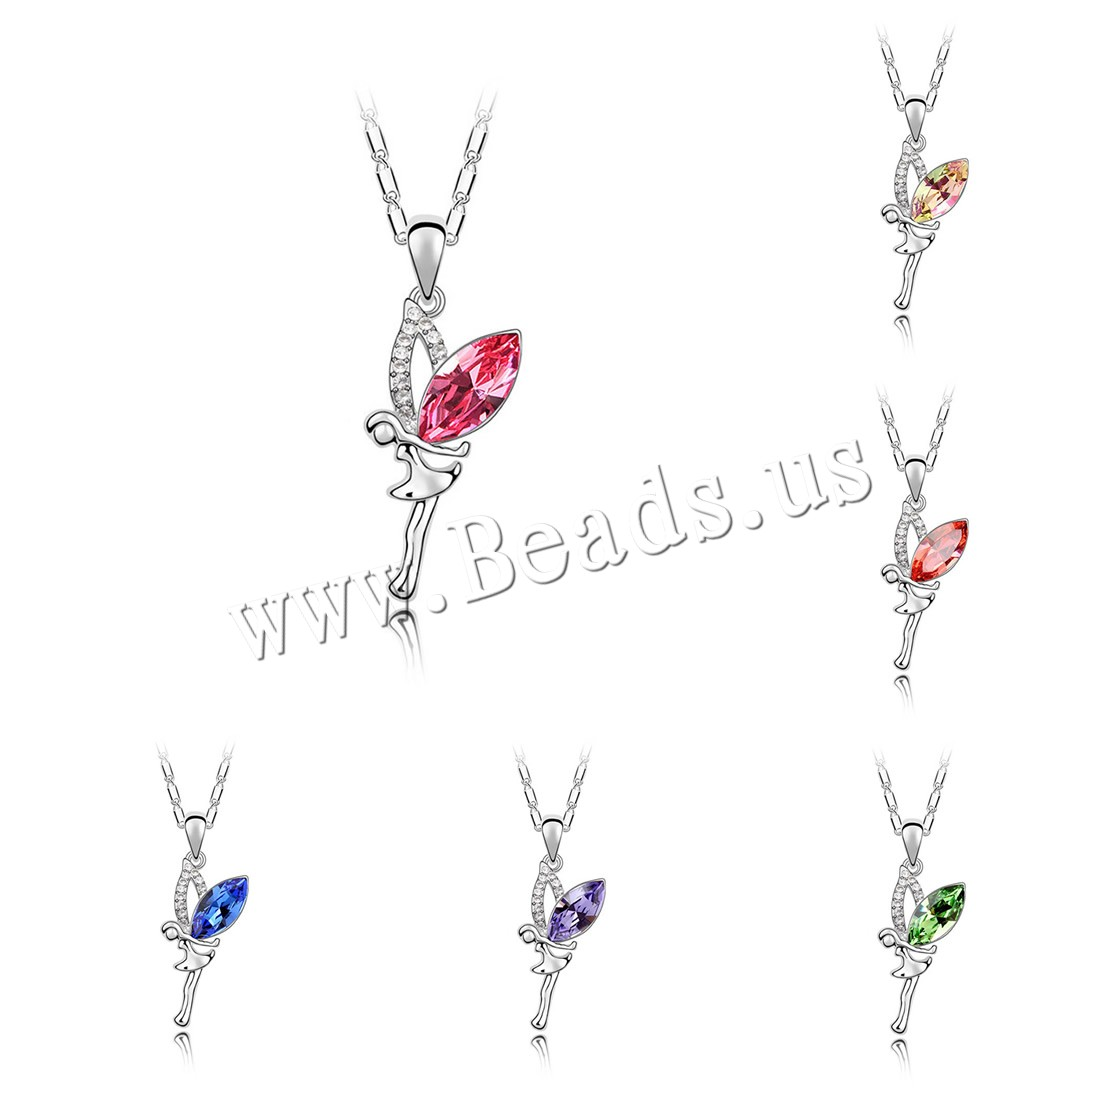 Buy CRYSTALLIZED™ Element Crystal Necklace Brass CRYSTALLIZED™ 5cm extender chain Angel platinum plated bar chain & woman & faceted colors choice nickel lead & cadmium free 18x38mm Sold Per Approx 15.5 Inch Strand